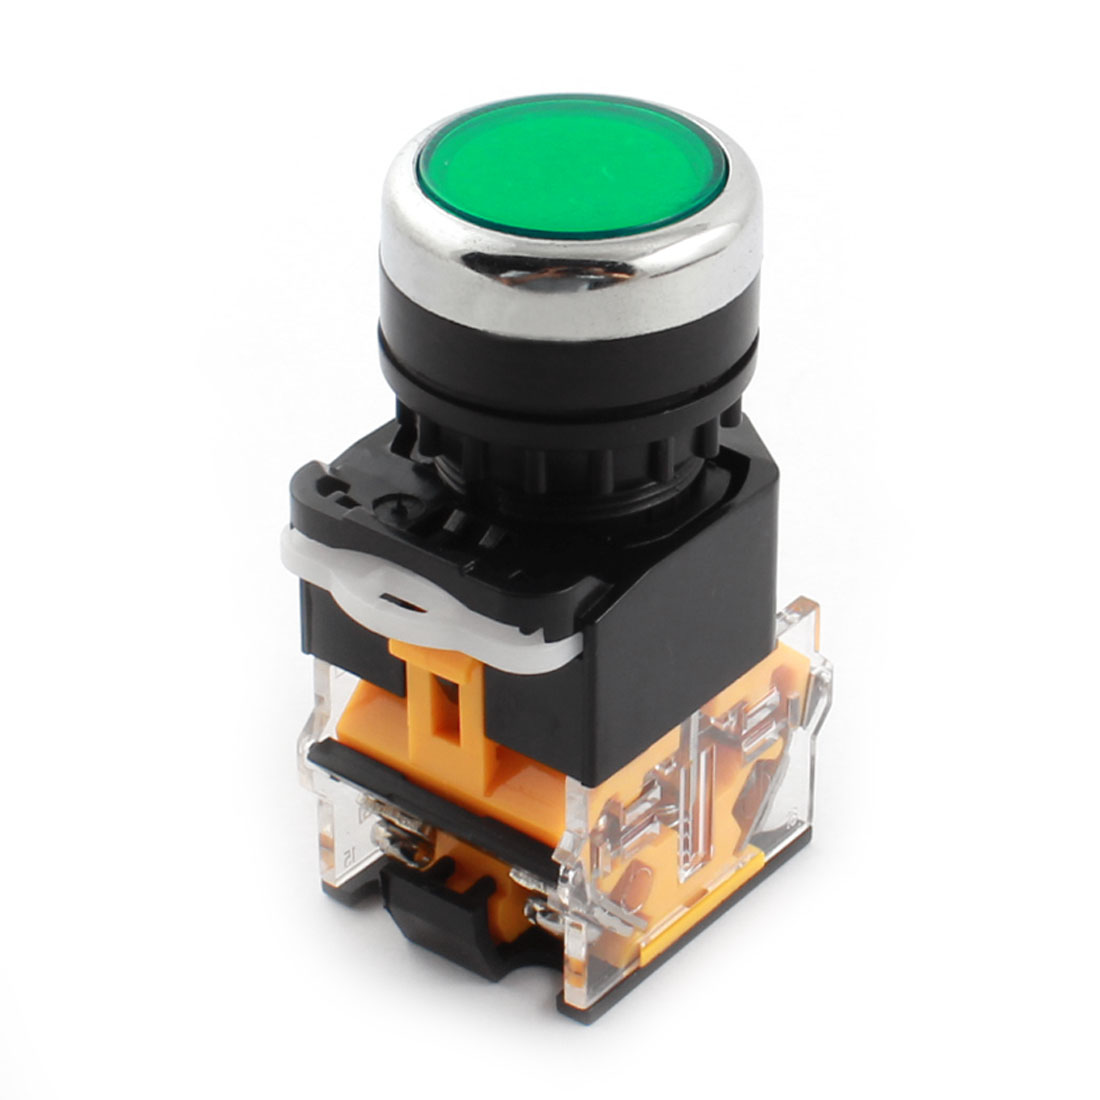 AC660V 10A 24mm Dia Thread Panel Mount DPST 1NO 1NC 4 Screw Terminal Momentary Green Push Button Switch